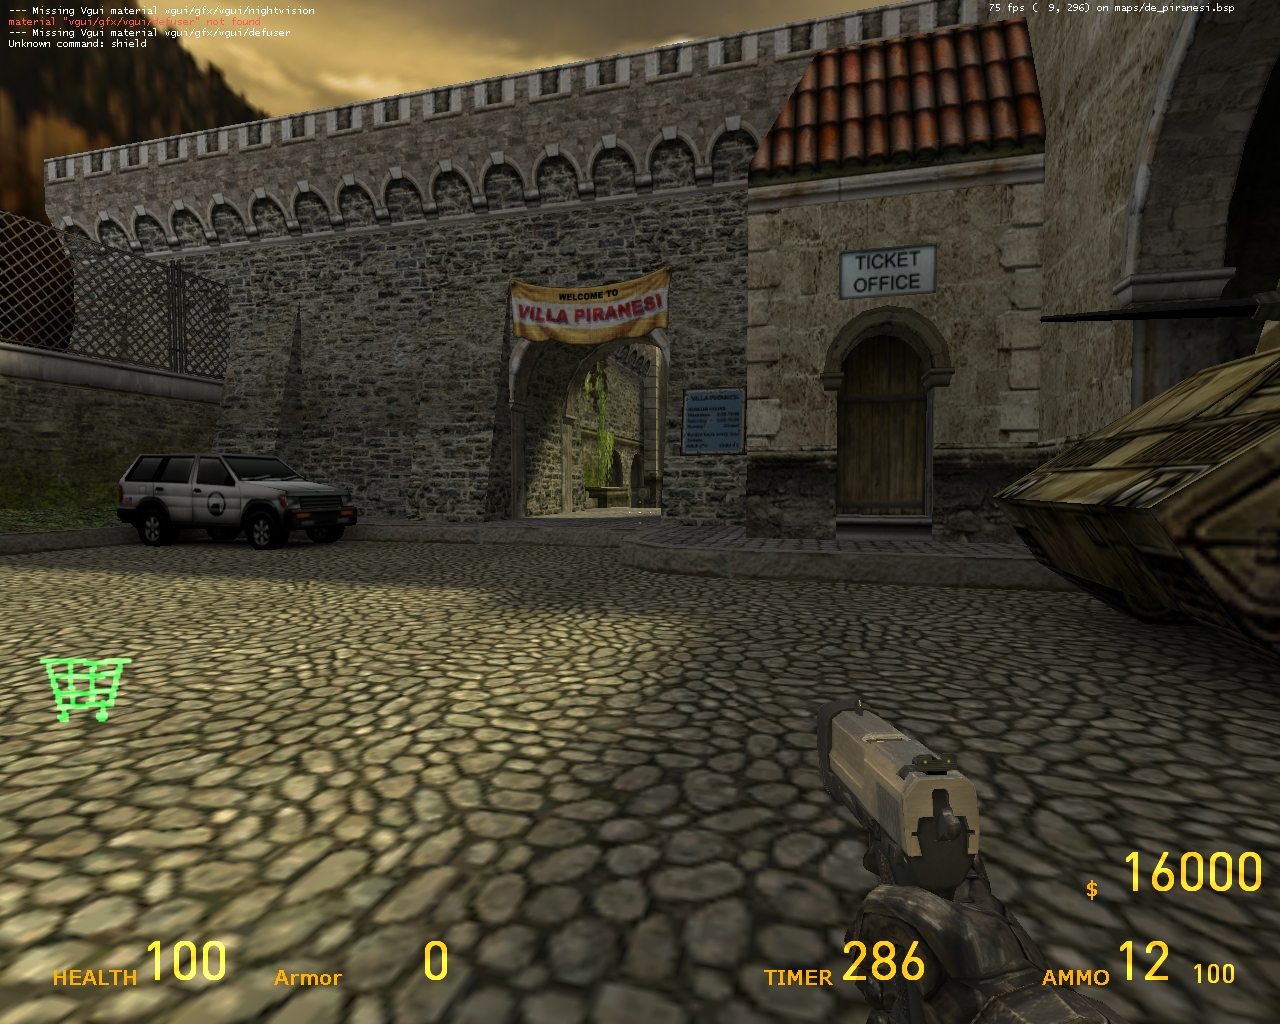 Half-Life Ports - Counter-Strike